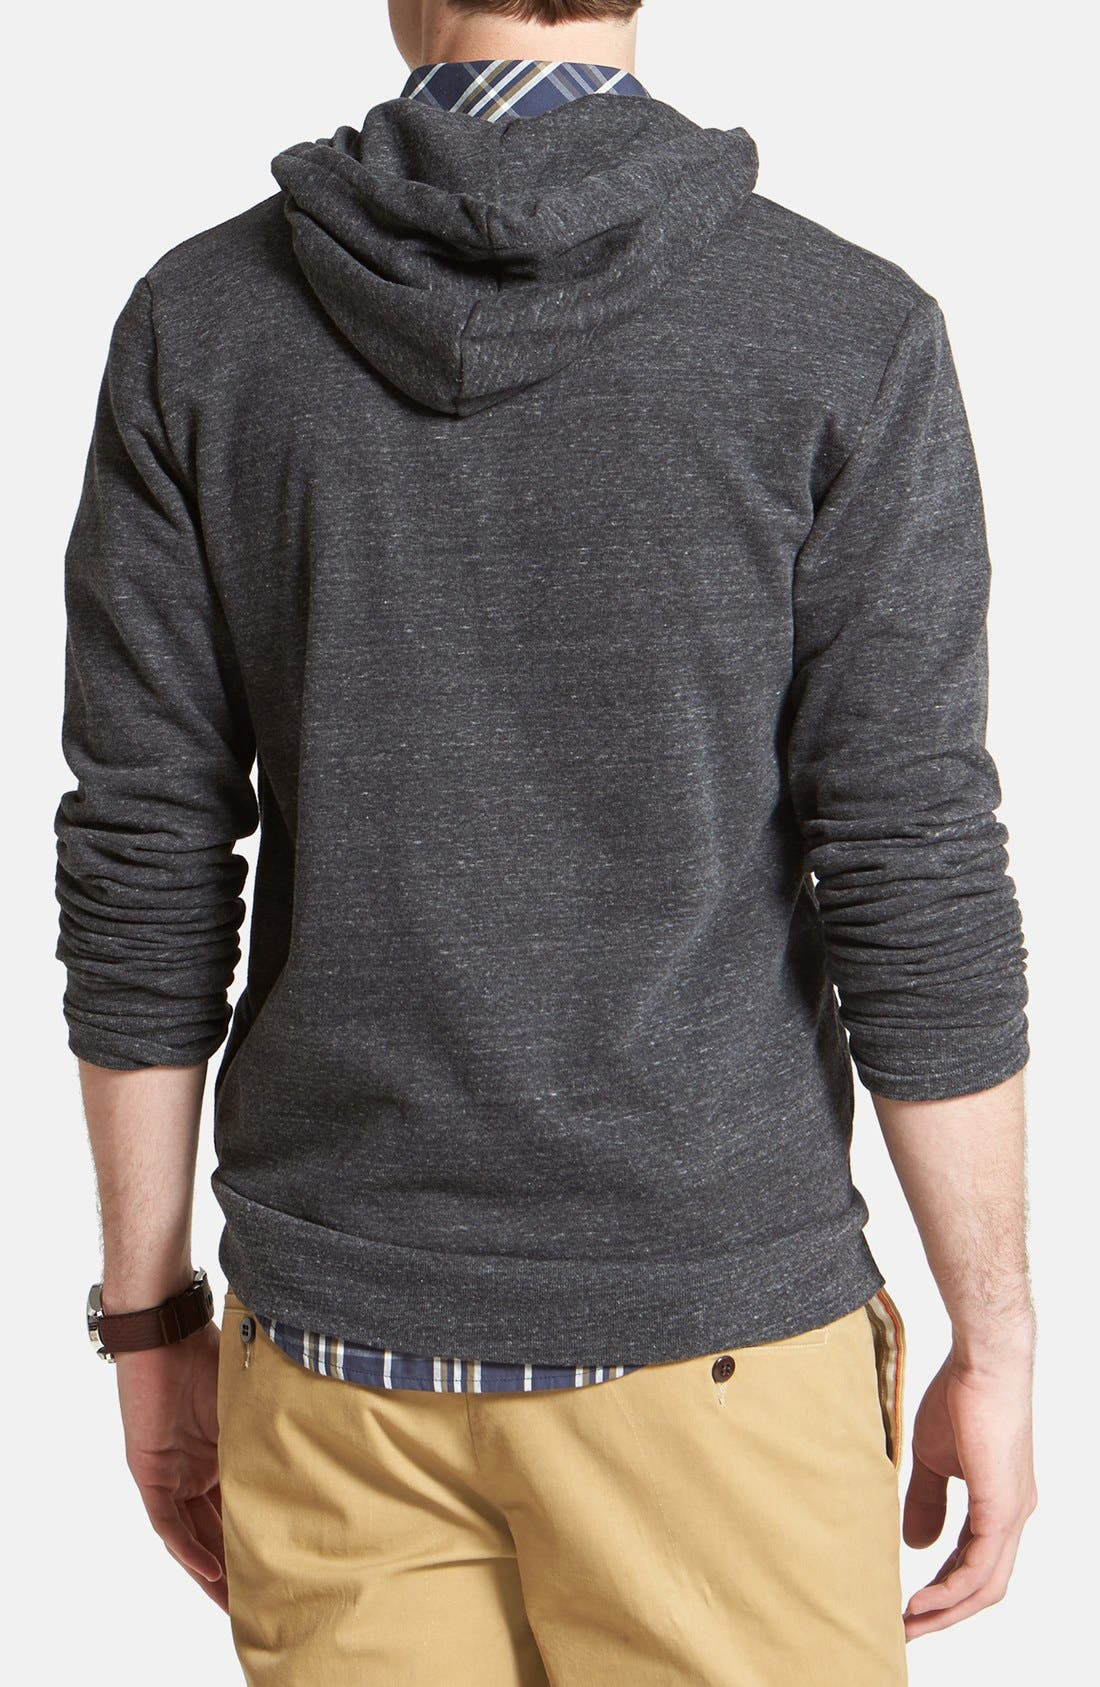 Threads for Thought Trim Fit Heathered Hoodie,                             Alternate thumbnail 2, color,                             Heather Black